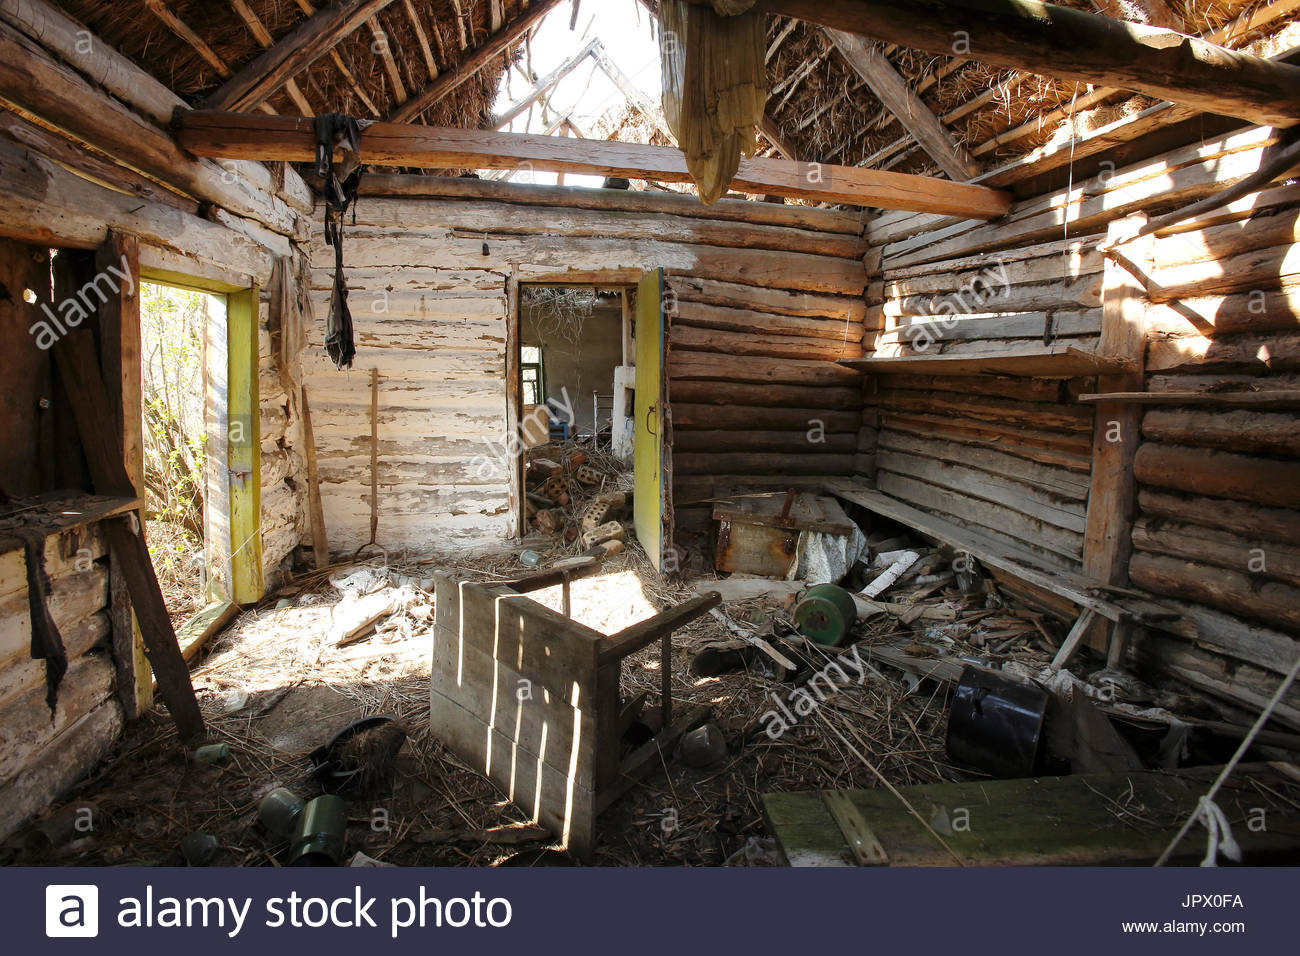 Abandoned wooden house collapsed roof - Ukraine - Stock Image